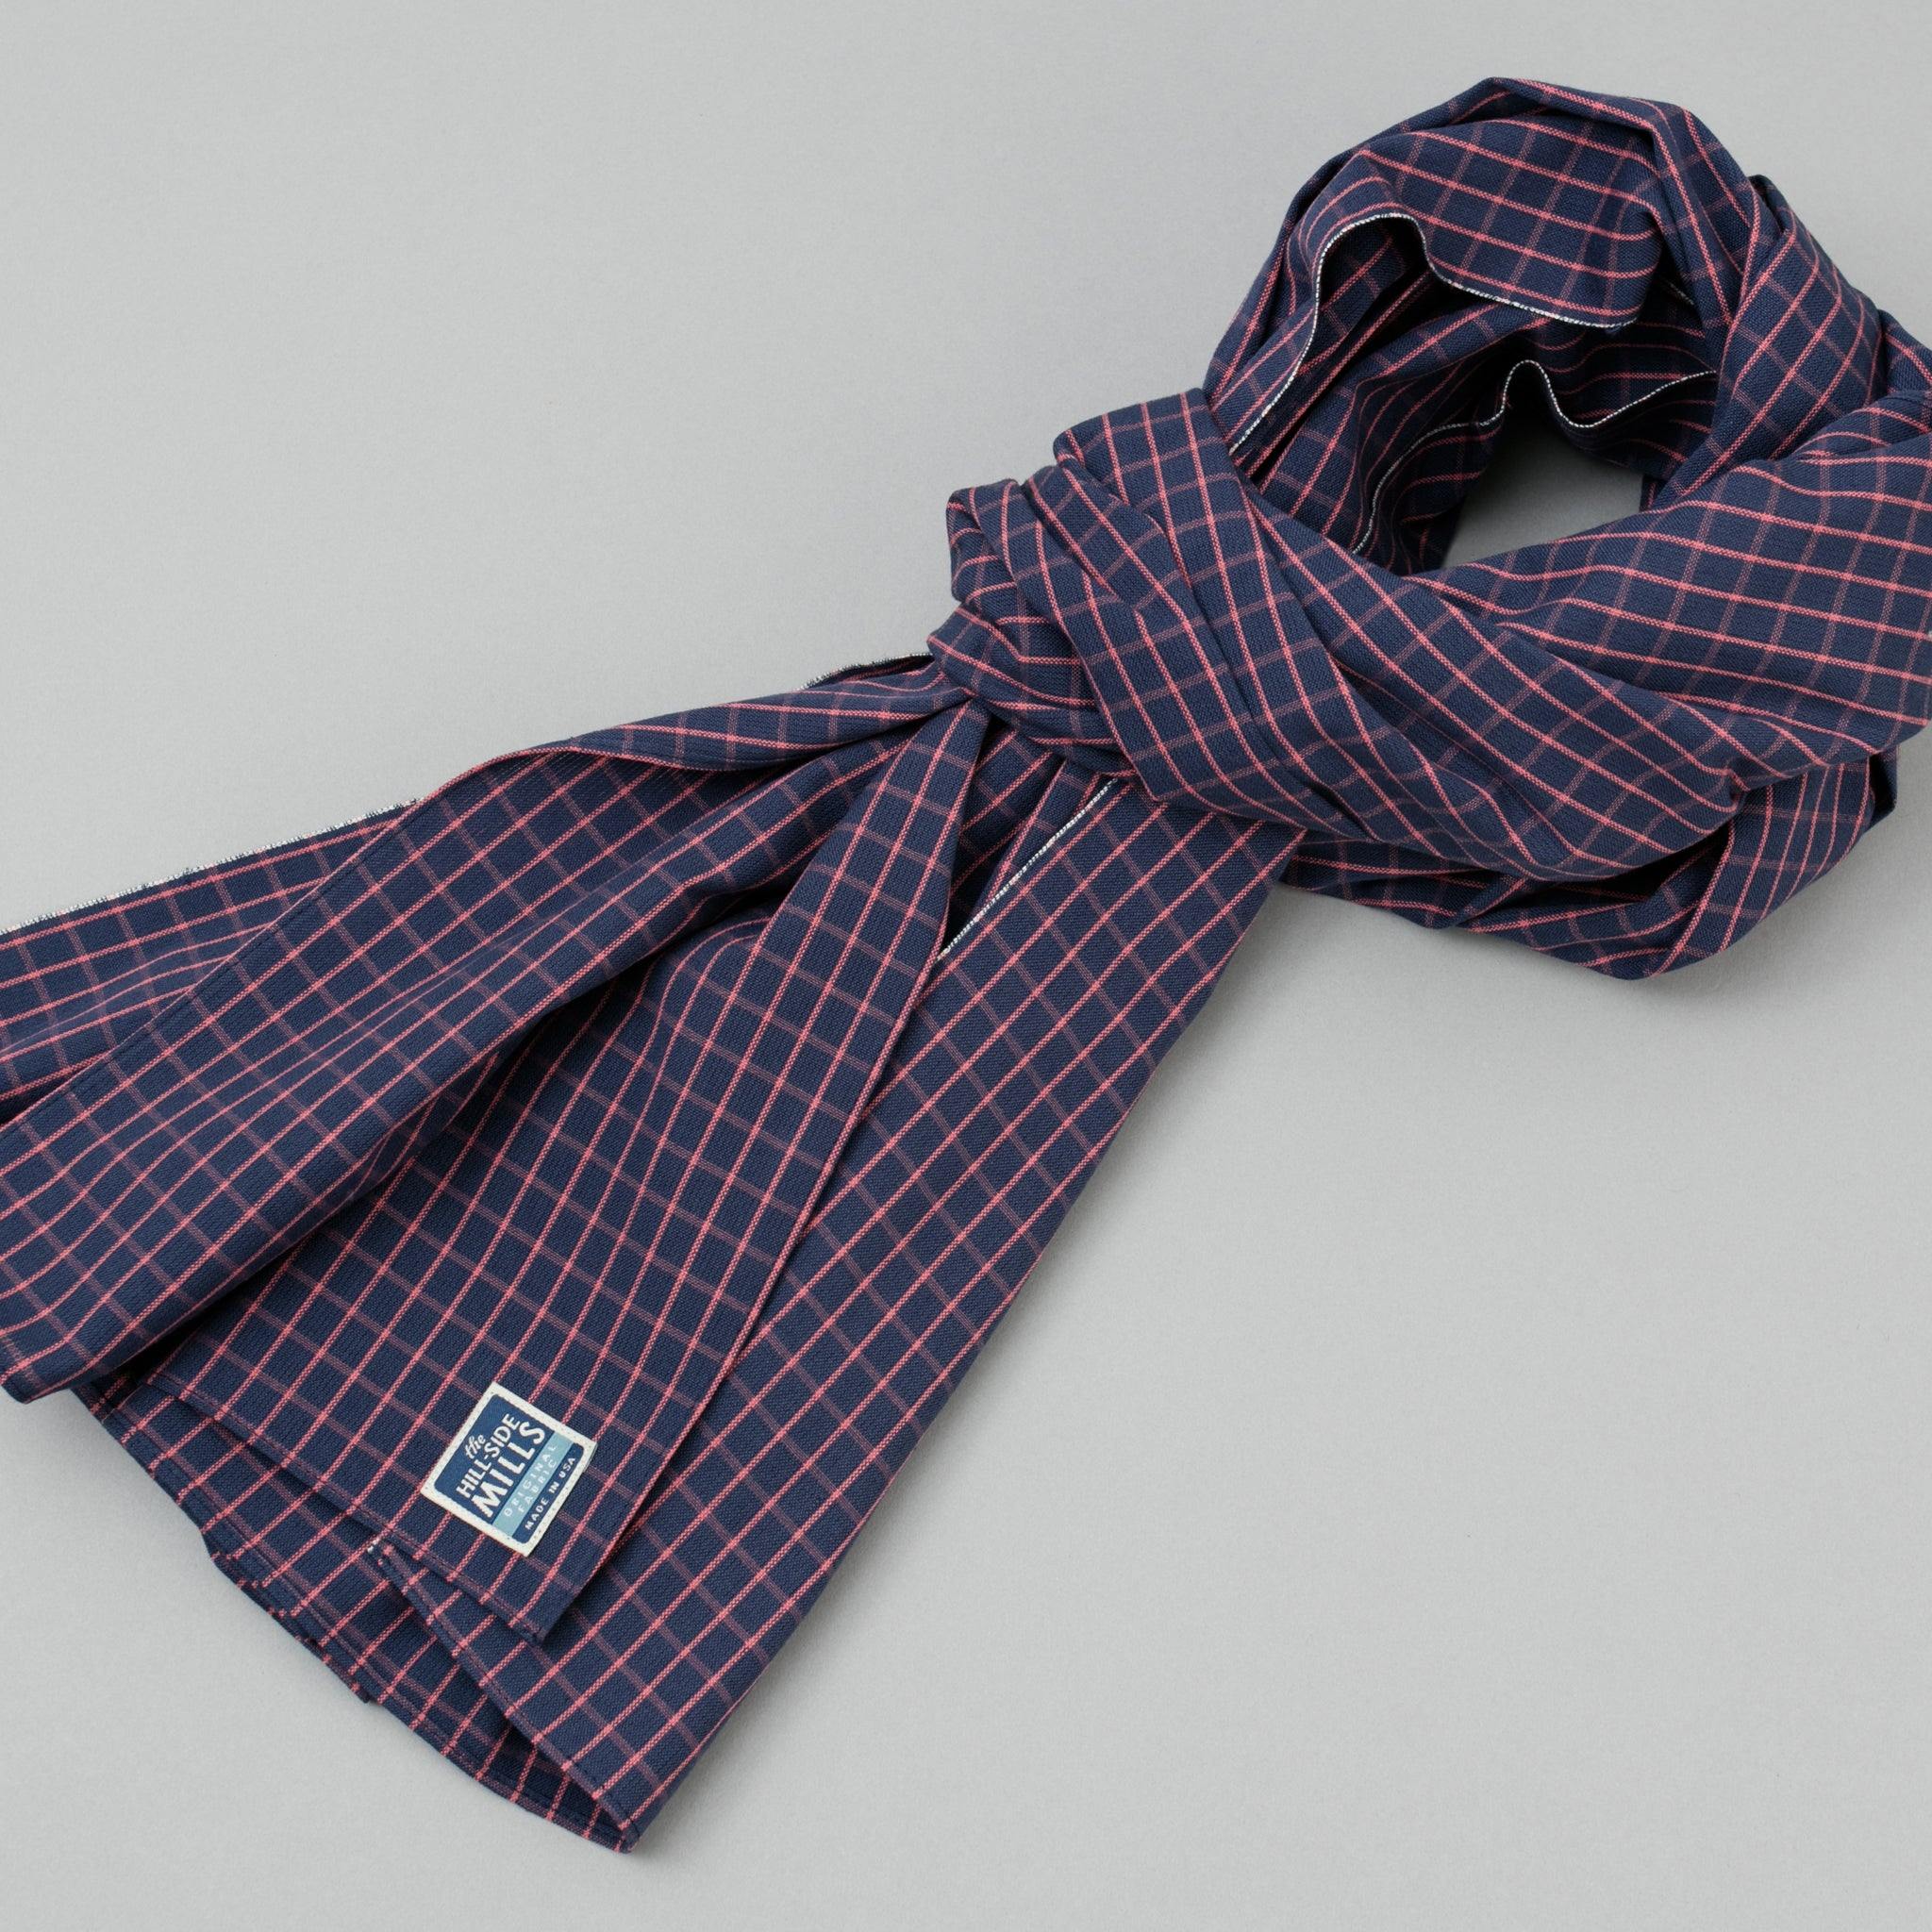 The Hill-Side - Scarf, TH-S Mills Navy Warp Windowpane Check, Coral - SC1-369 - image 1